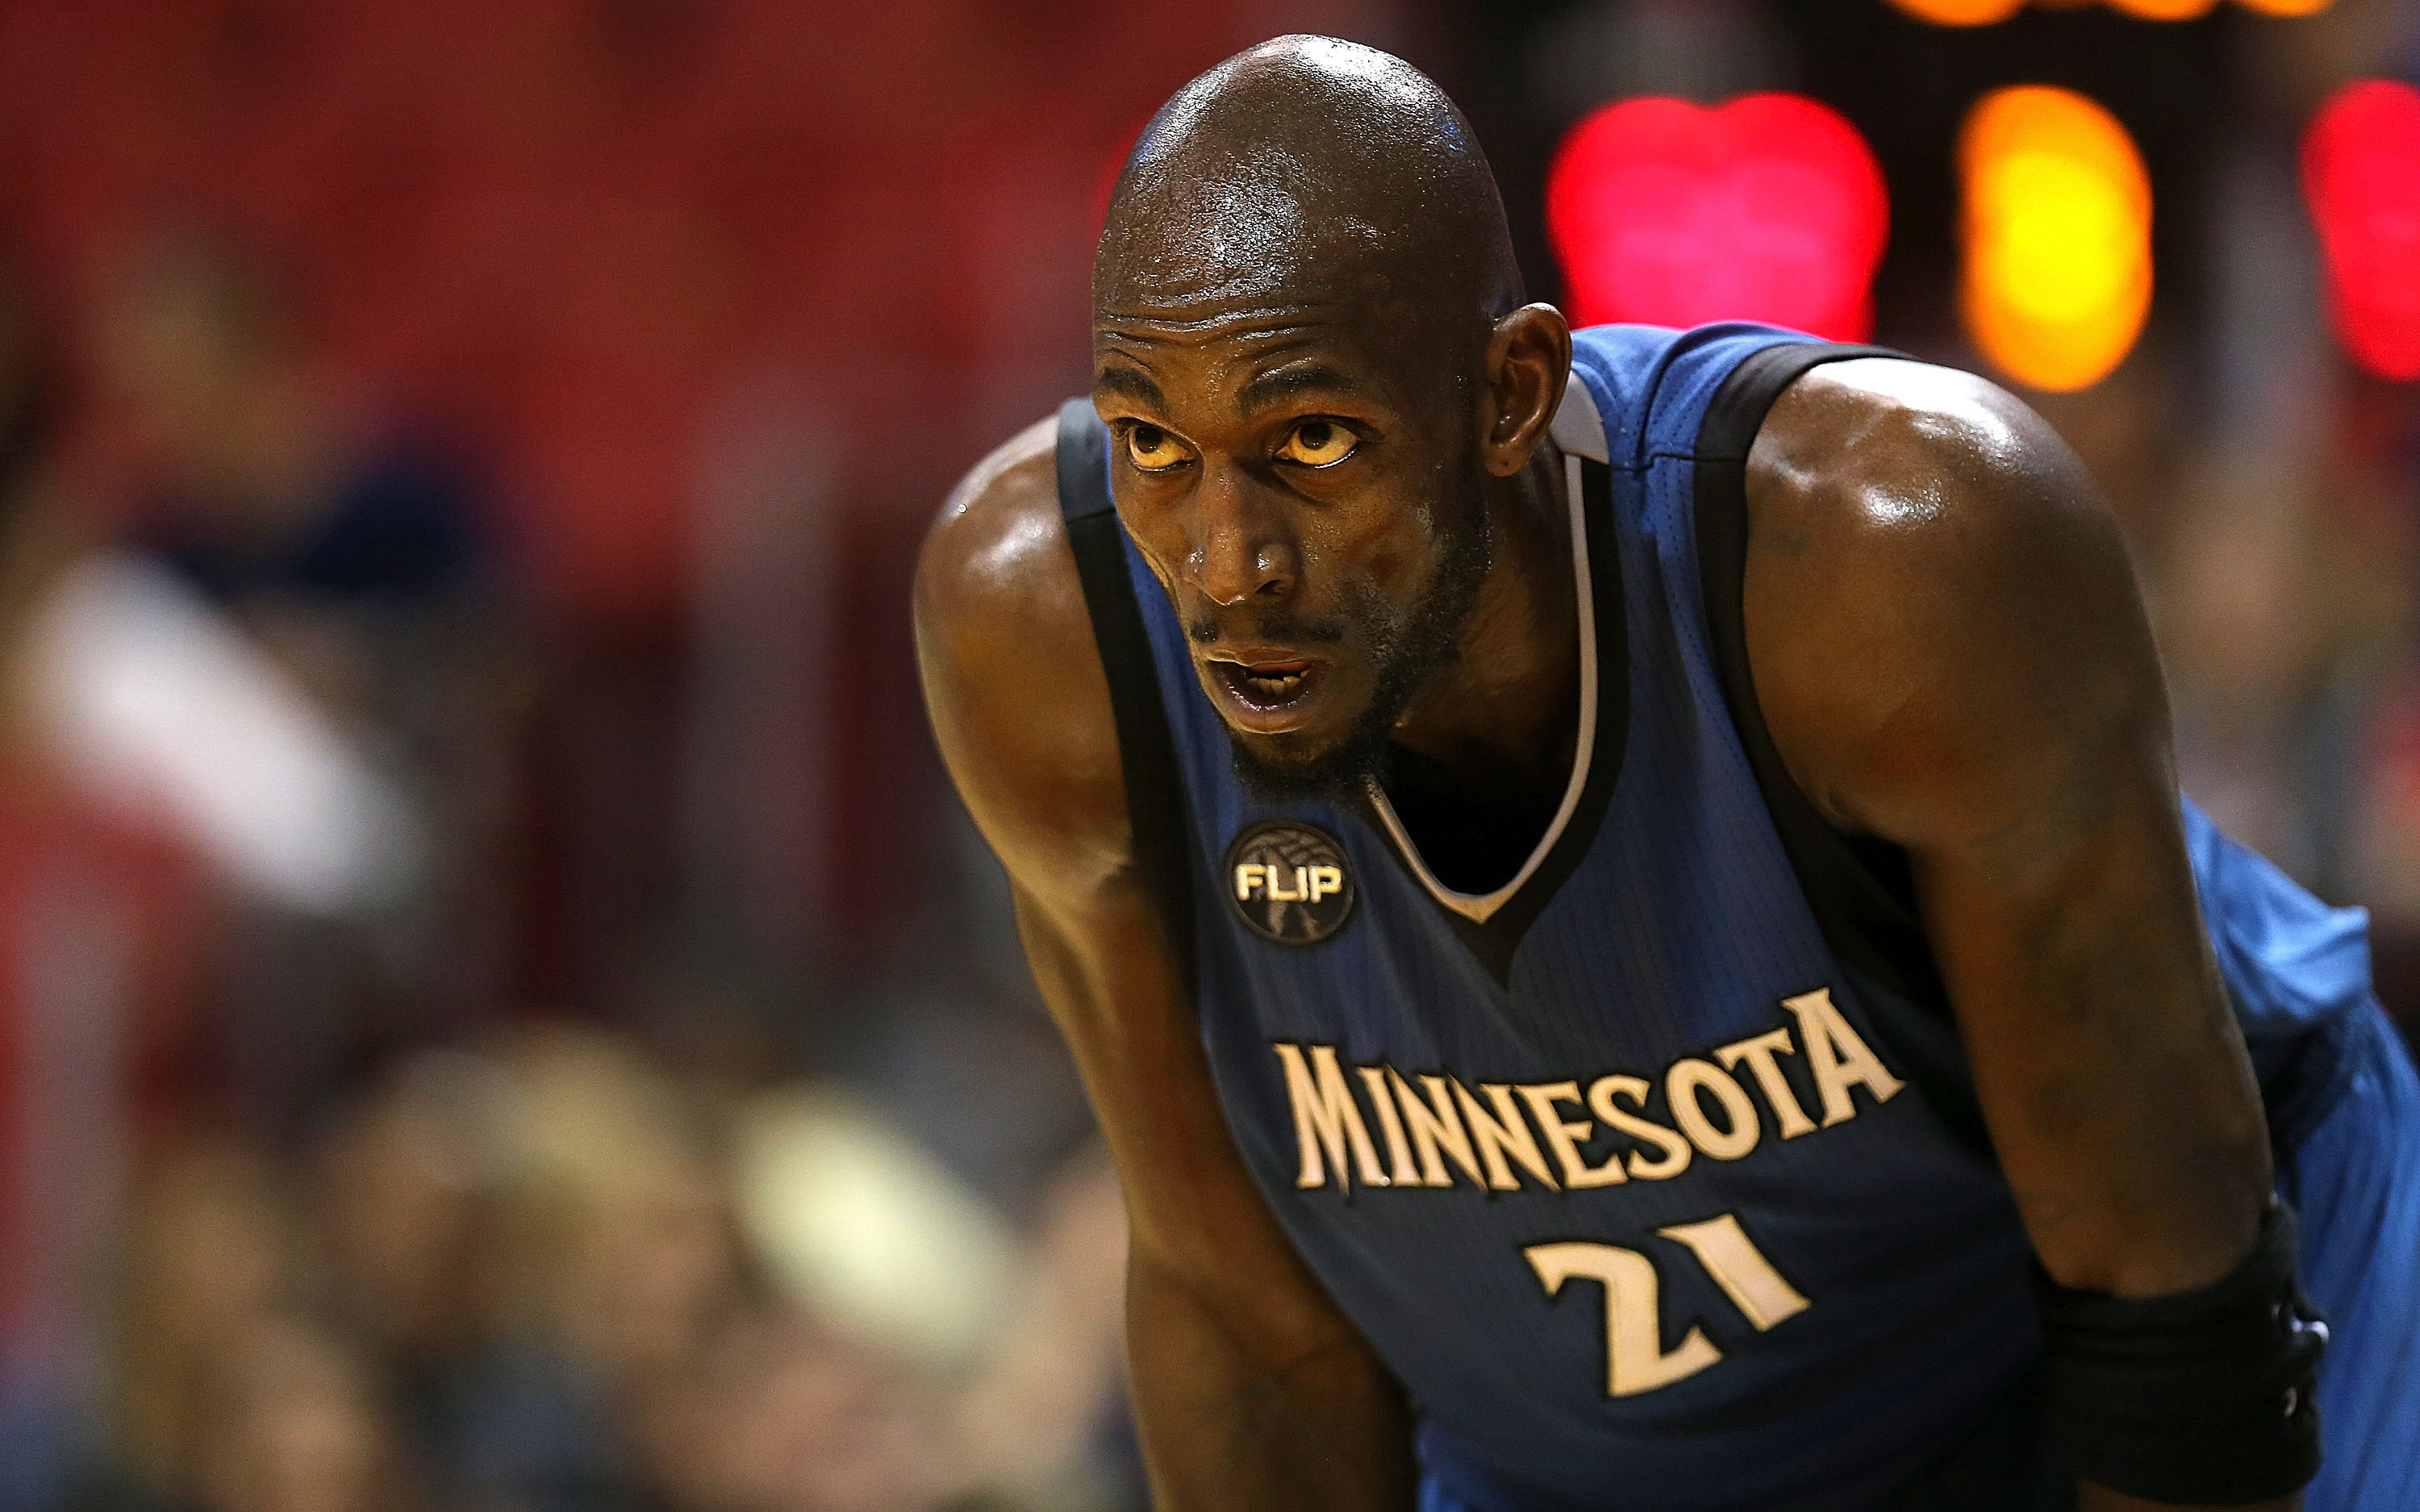 Kevin Garnett looking on during a Timberwolves game